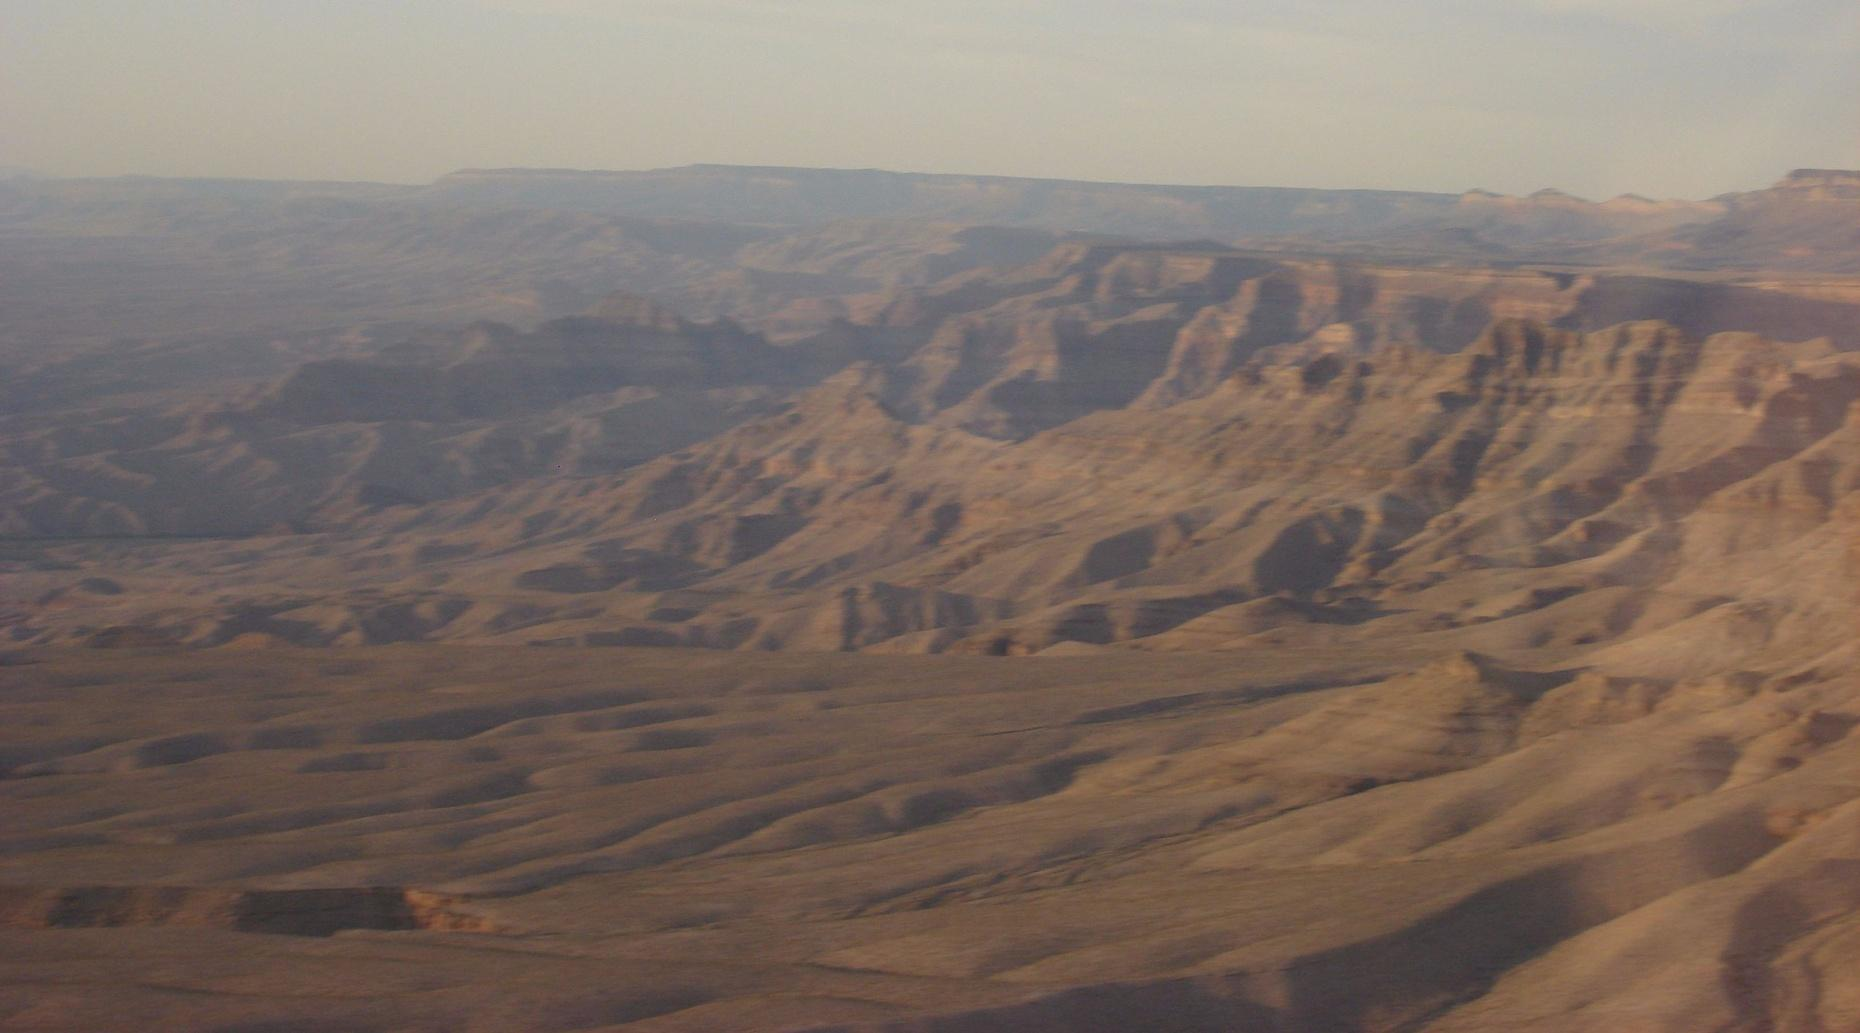 Helicopter Tour of Las Vegas & the Grand Canyon